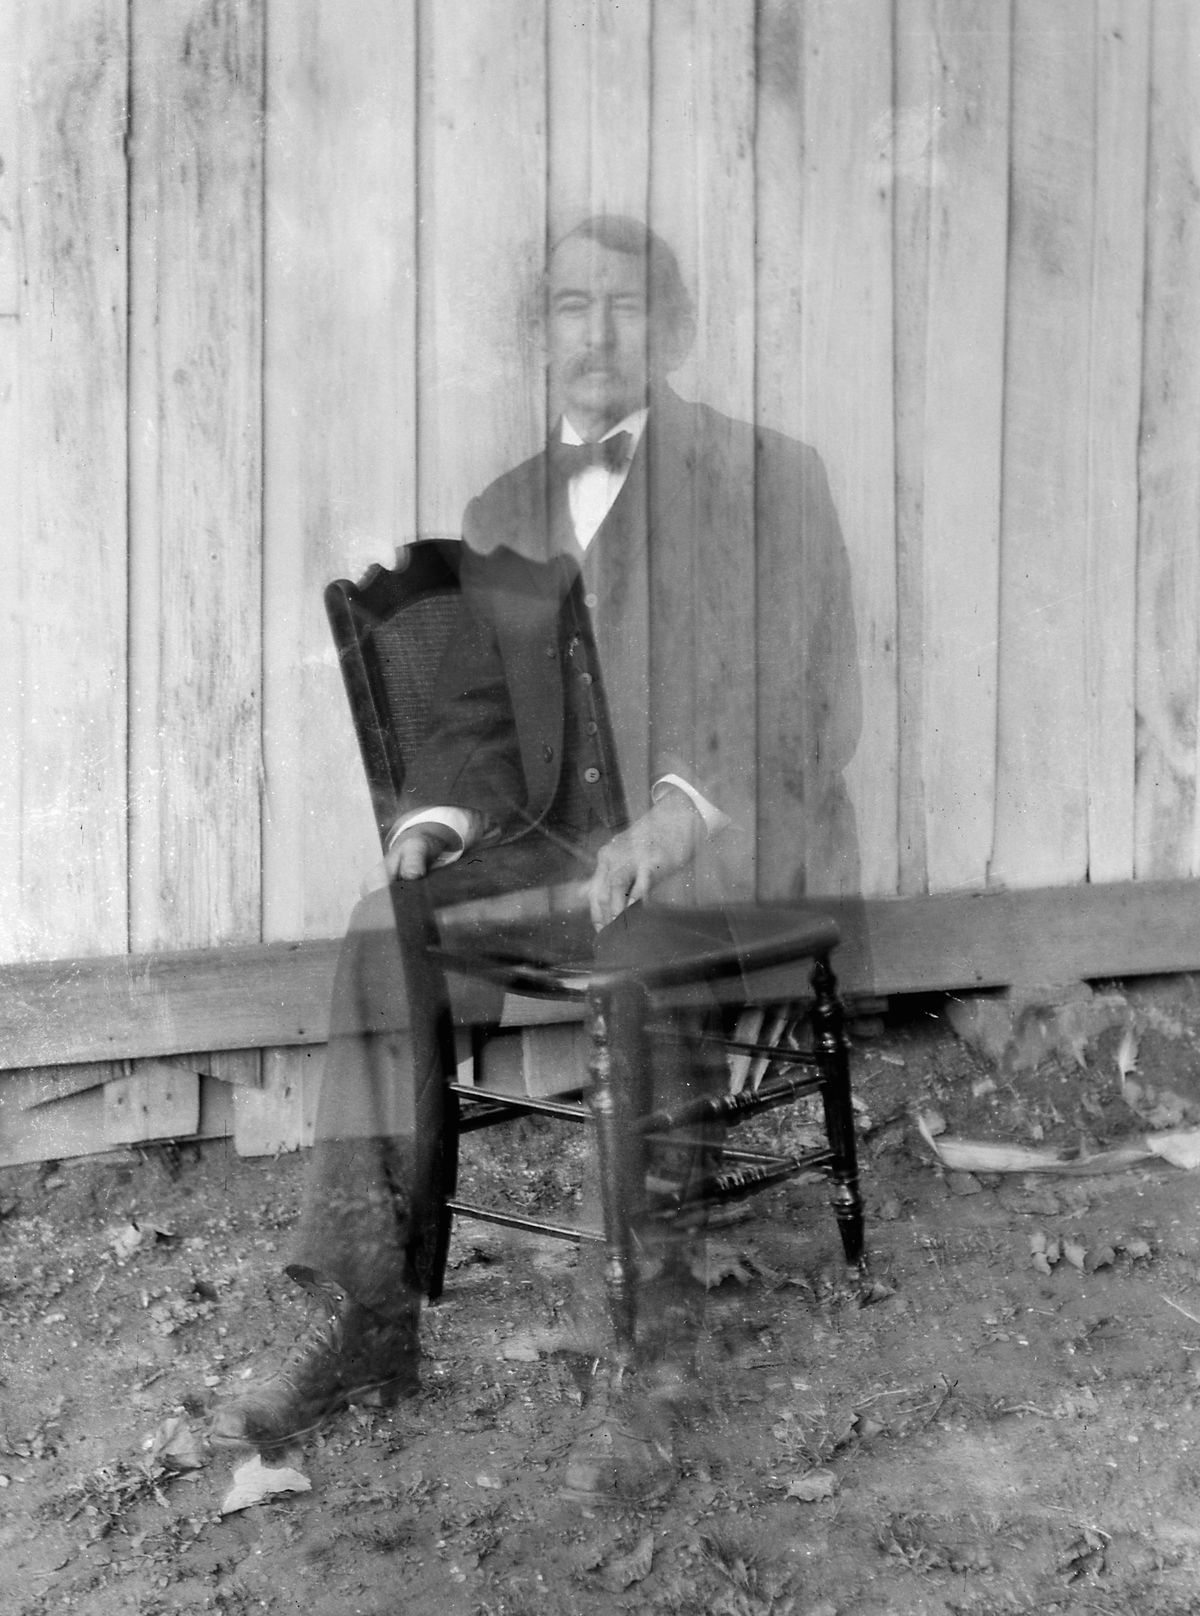 Double exposure of a man on a chair, ca. 1900.